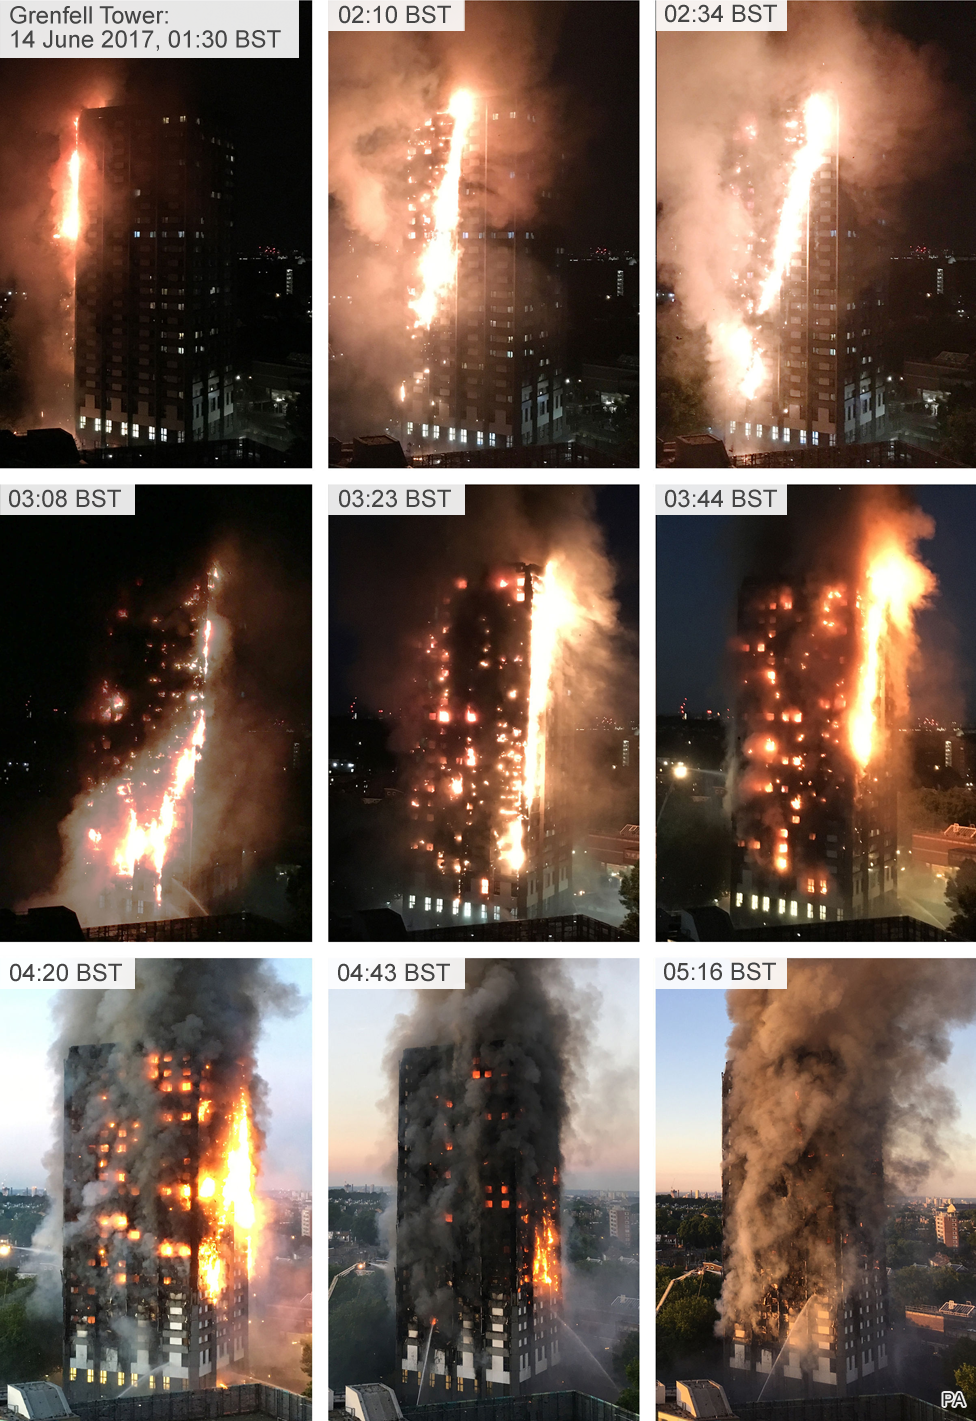 Progression of the fire around Grenfell Tower